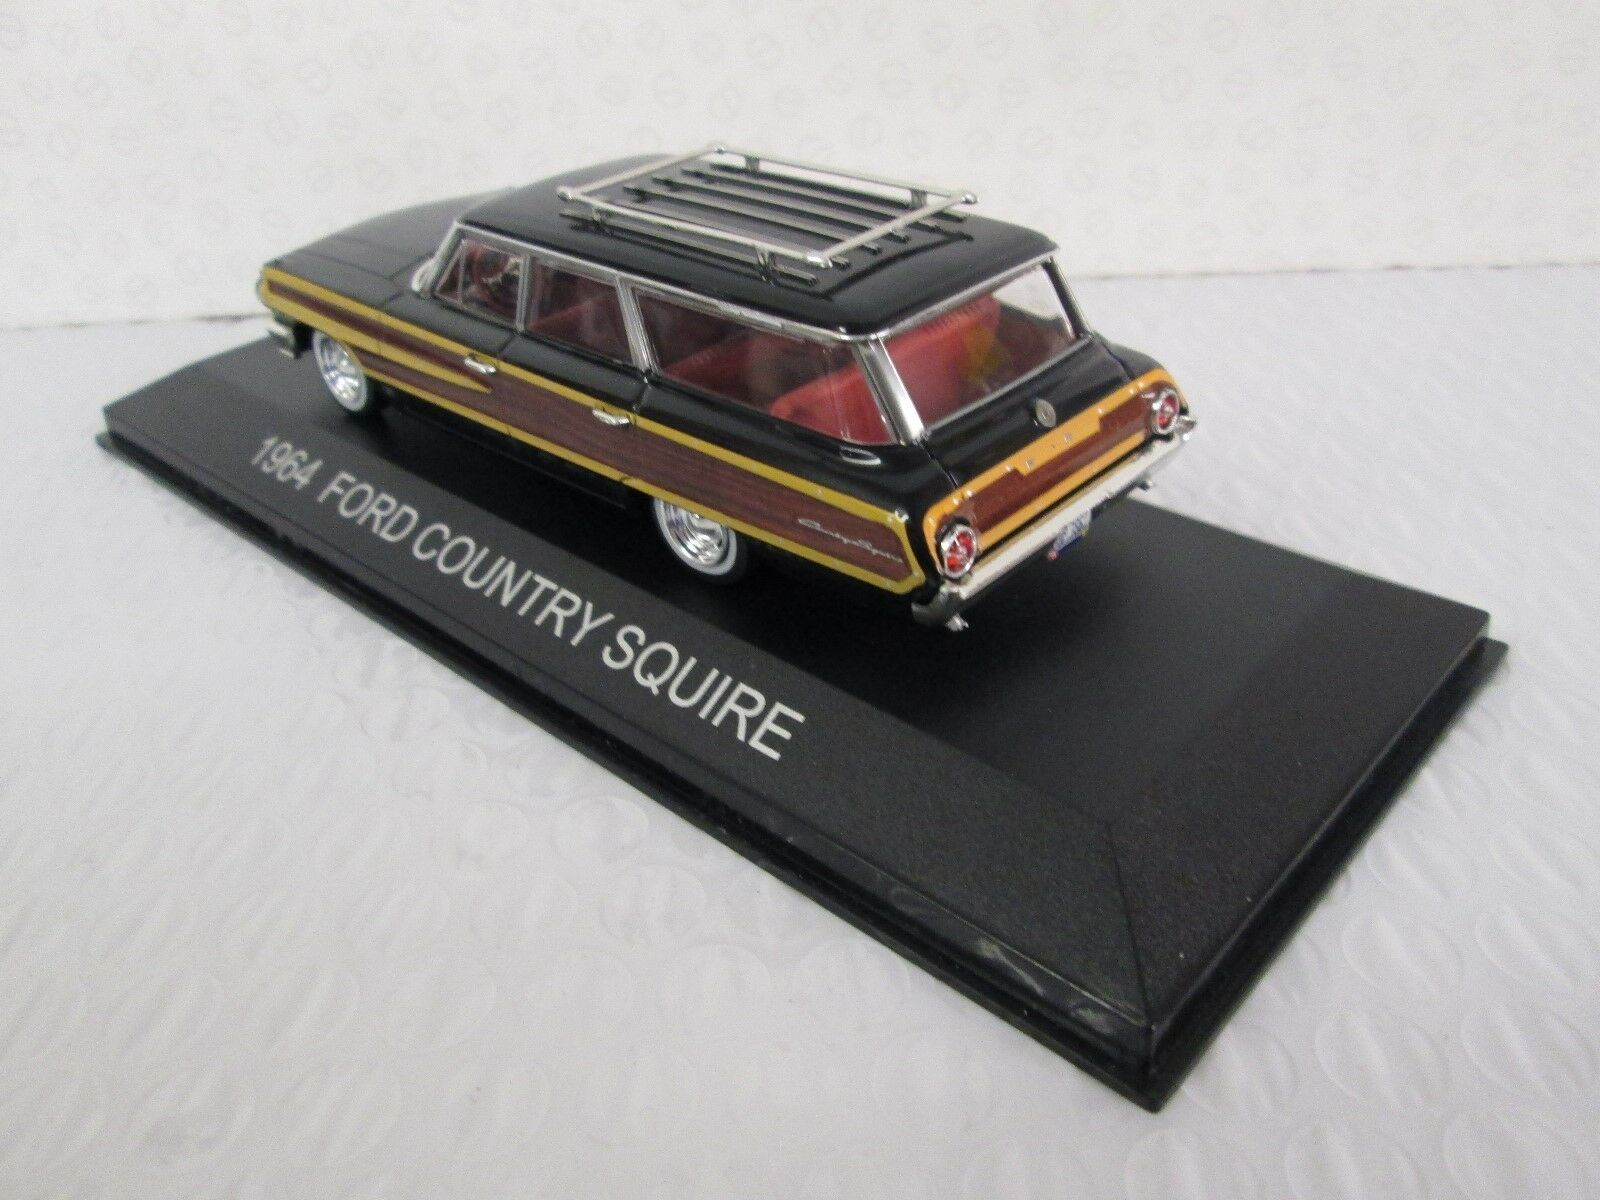 PREMIUM X. Ford Country Squire 1 1 1 43 scale. 186918. b86191